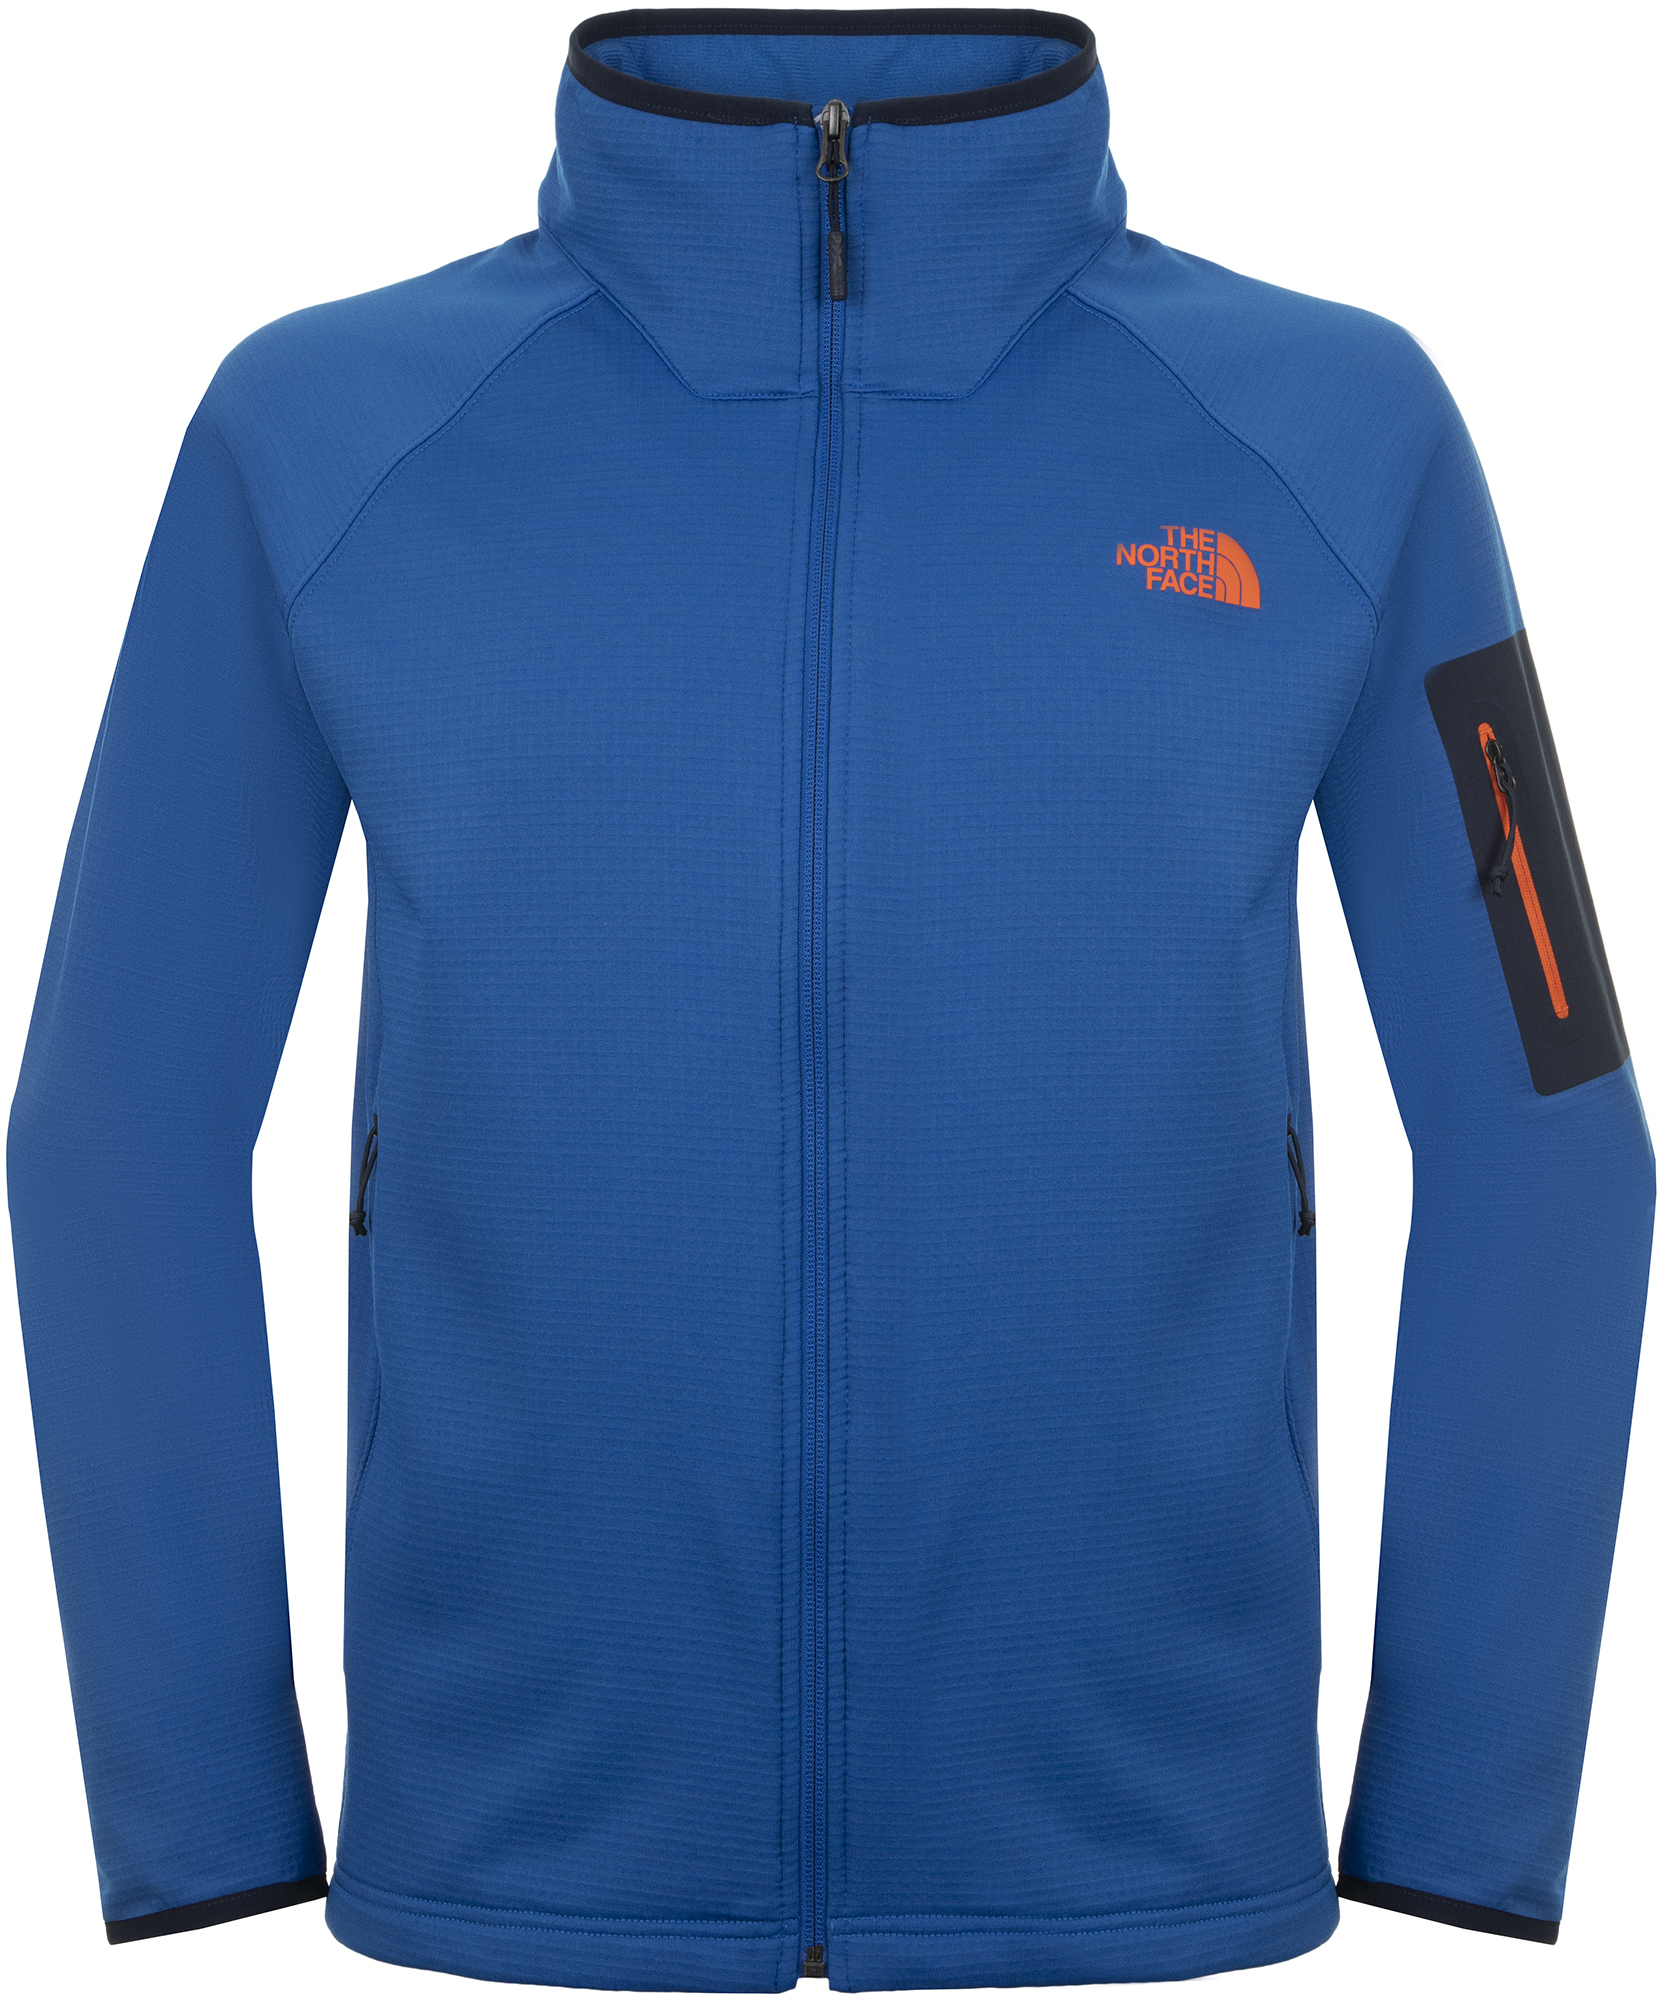 The North Face Джемпер флисовый мужской The North Face Borod, размер 52 the north face джемпер флисовый женский the north face impendor powerdry размер 48